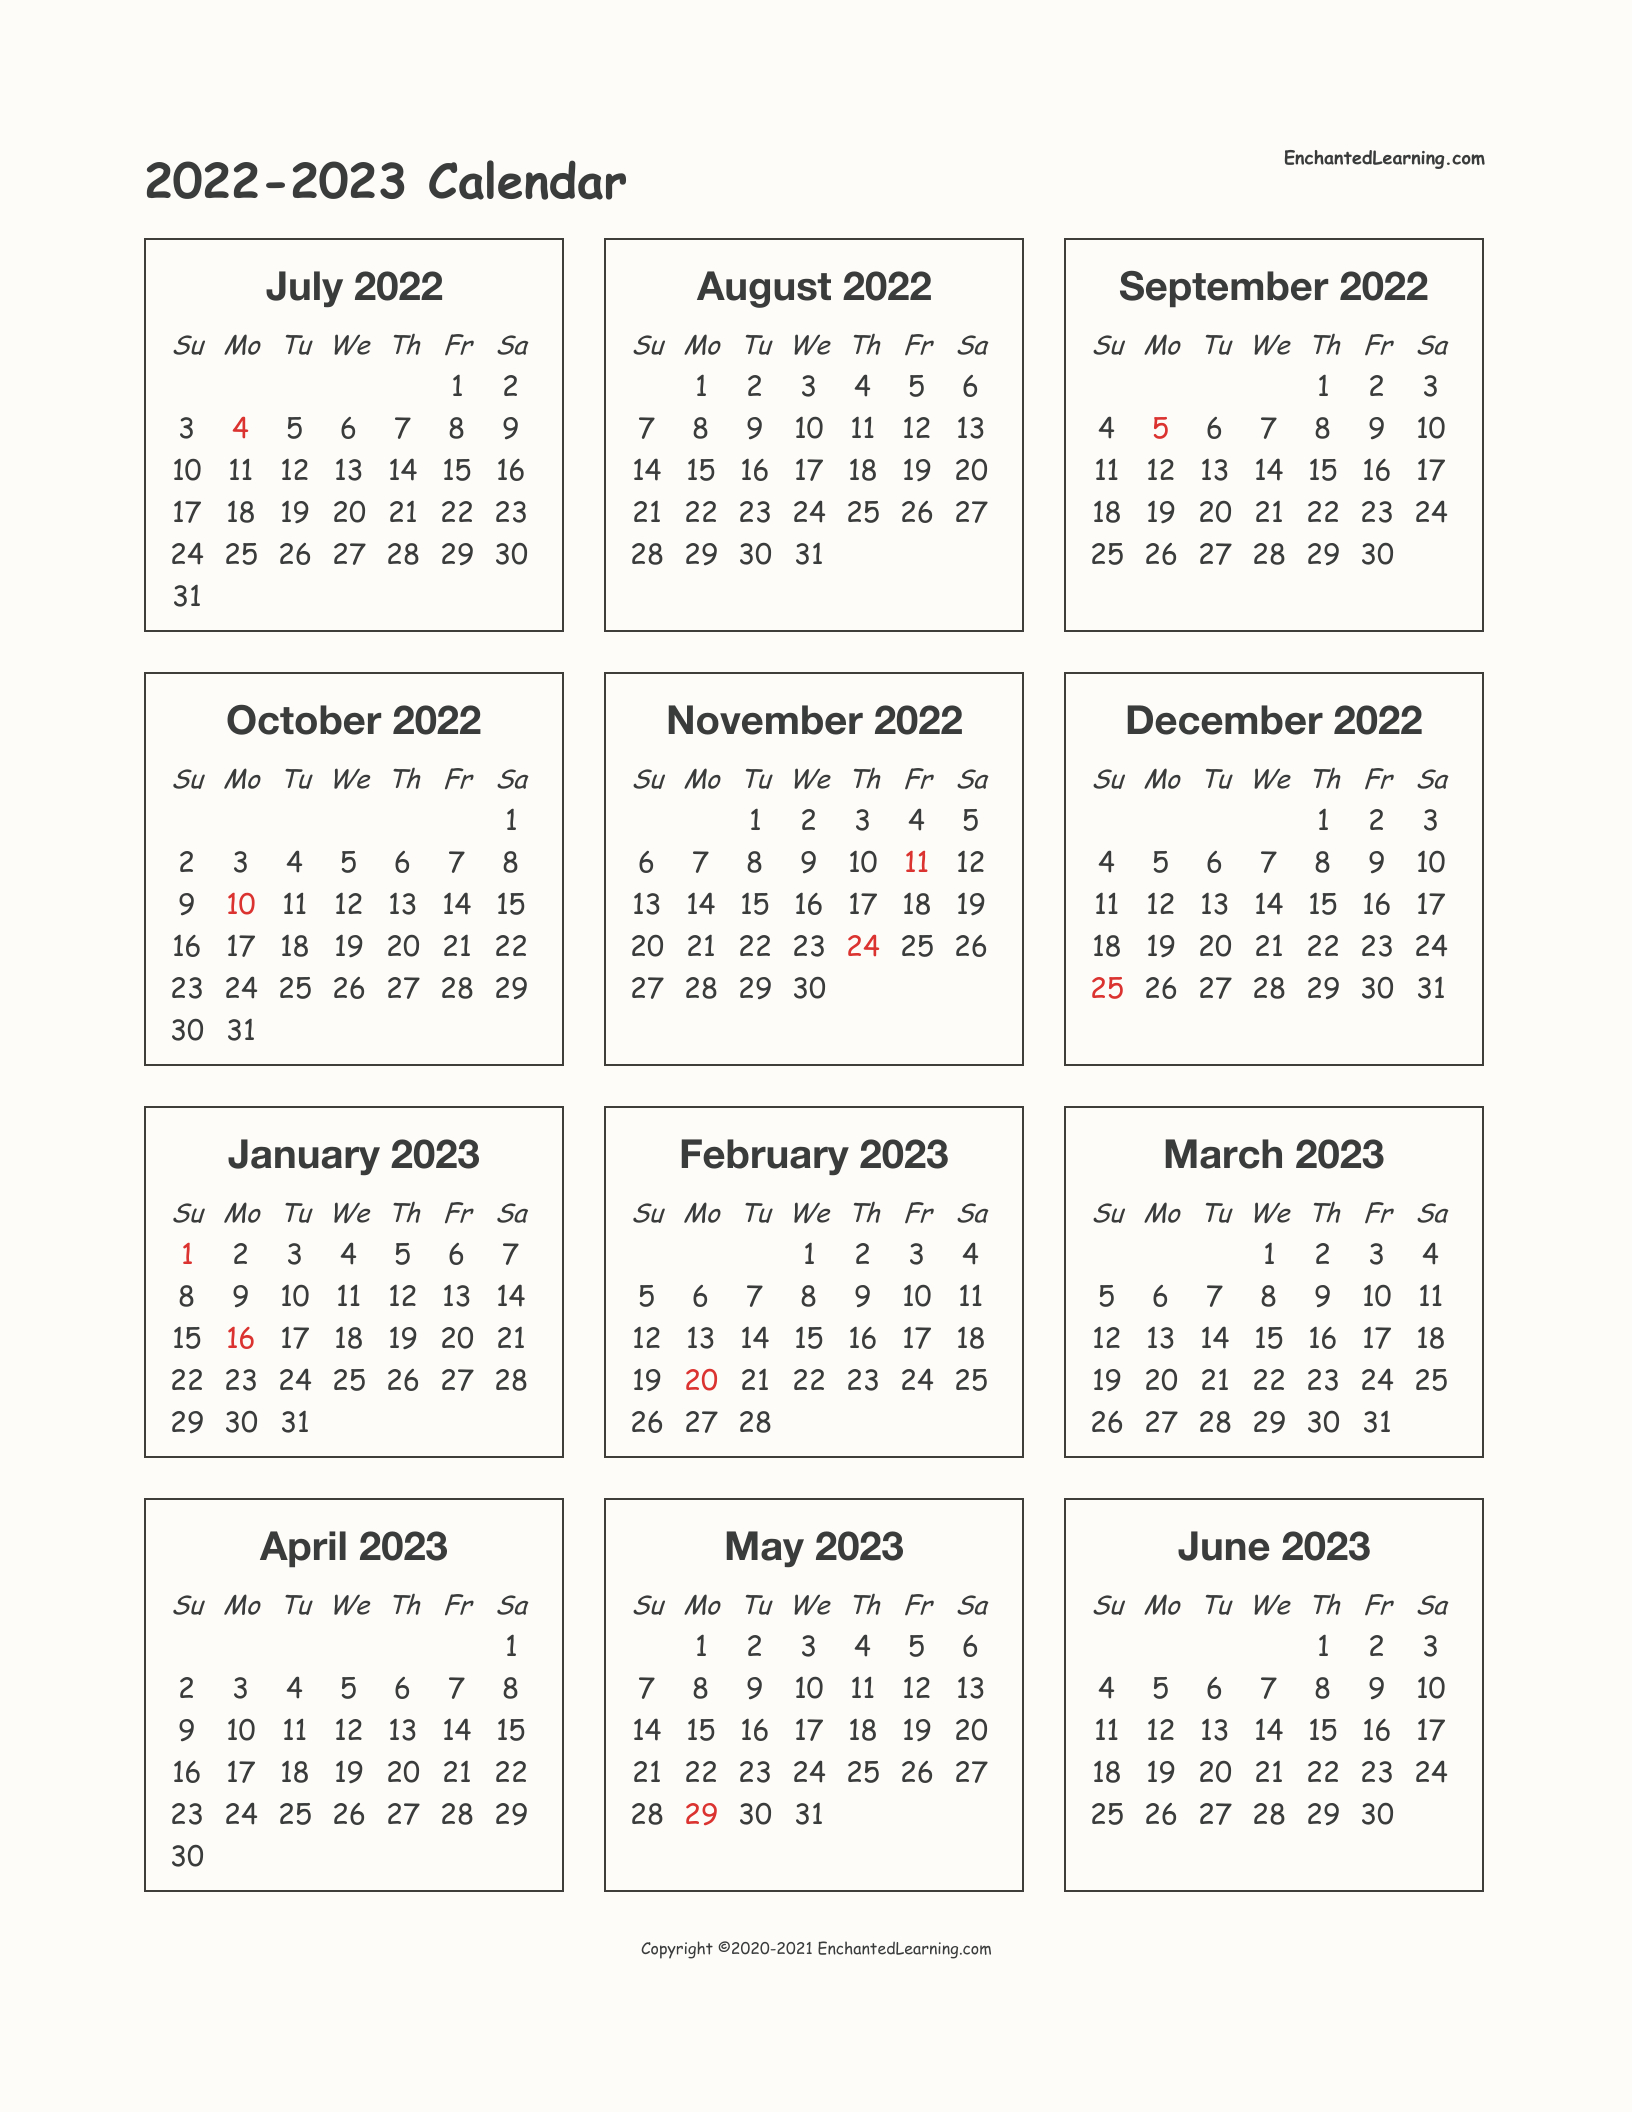 2022-2023 School-Year One-Page Calendar - Enchanted Learning